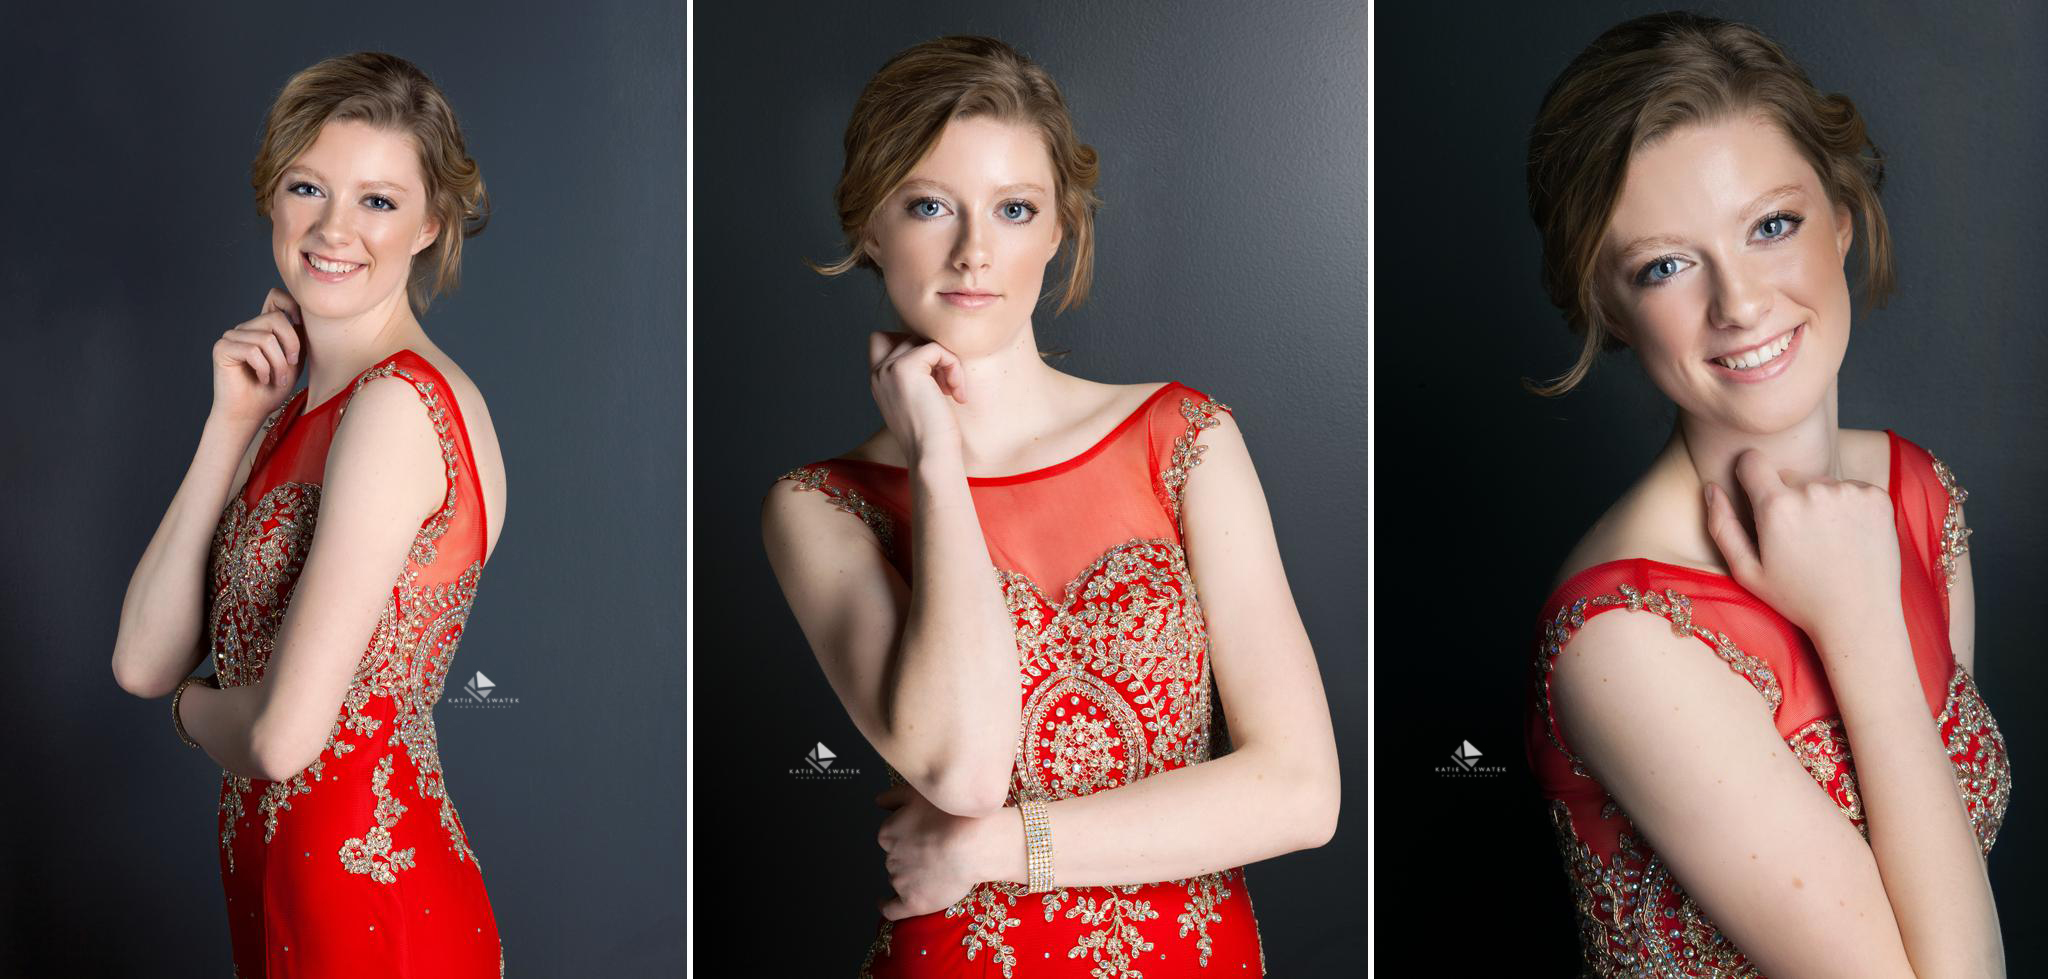 blonde senior girl in a red prom dress standing against a dark blue background in a studio set up